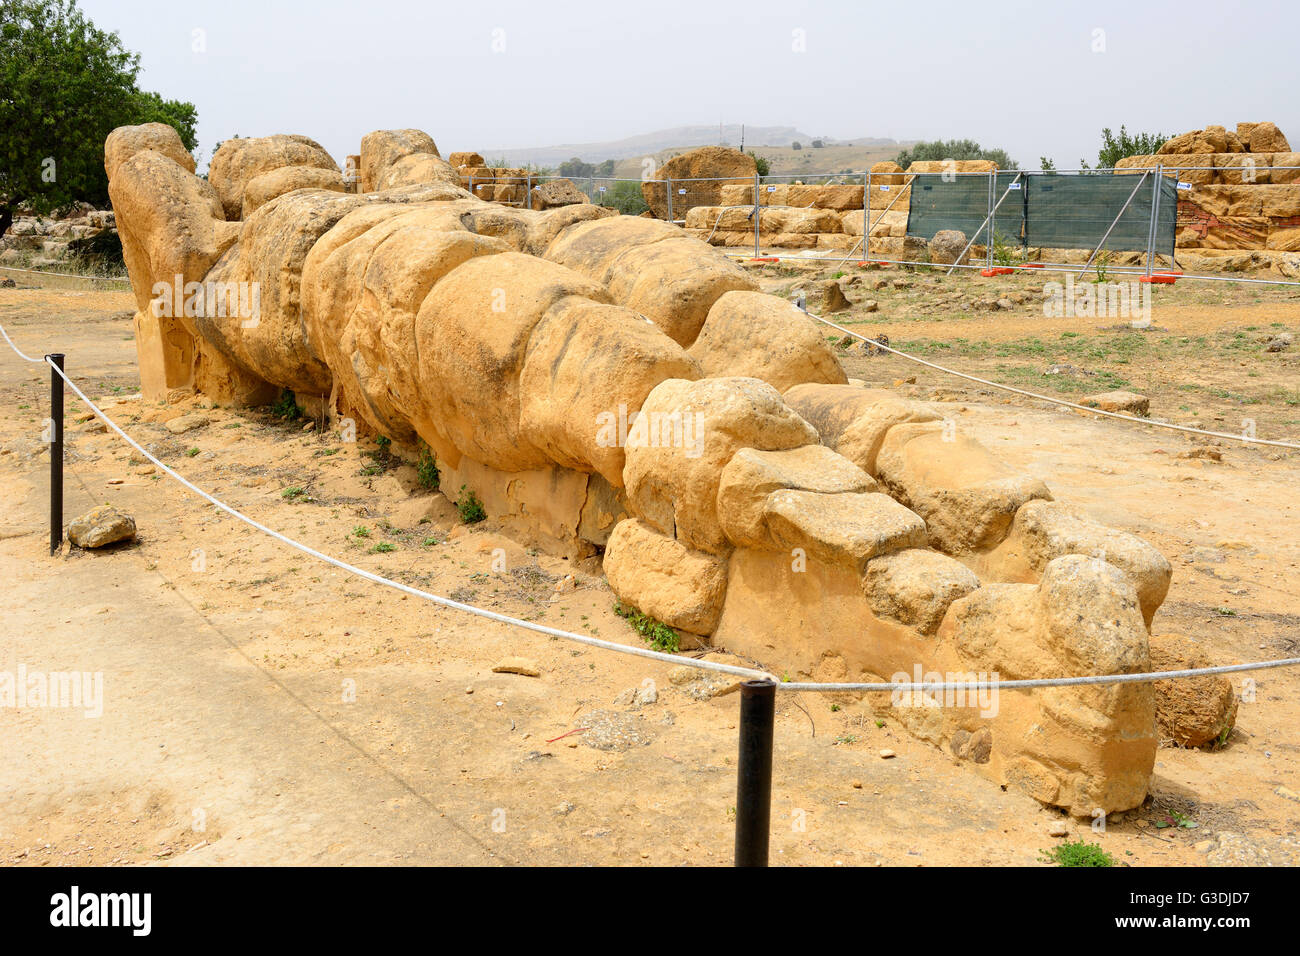 Telamon Temple of Olympian Zeus in Valley of the Temples (Valle dei Templi), Agrigento, Sicily, Italy - Stock Image